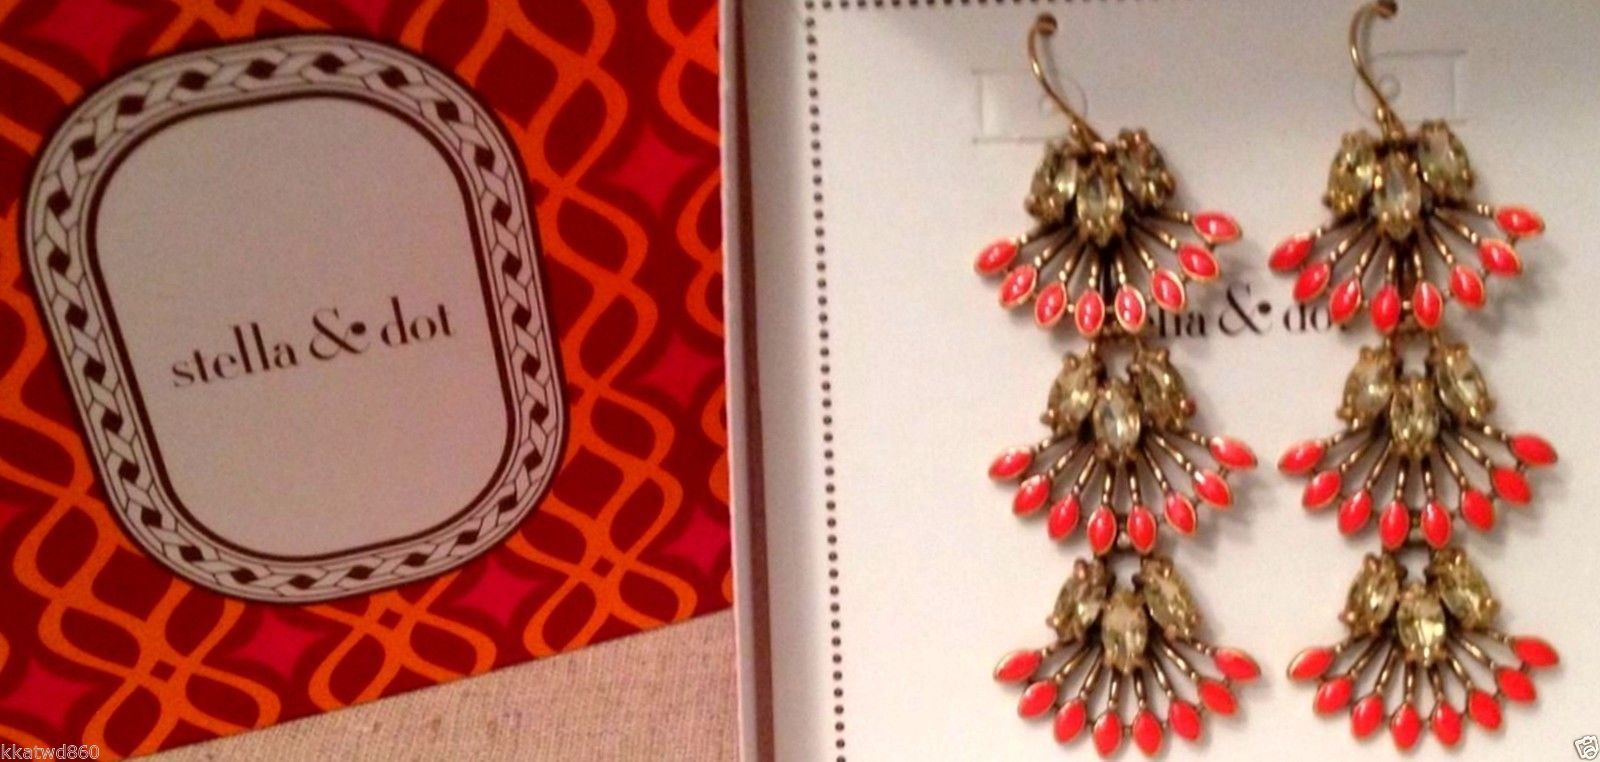 STELLA & DOT CORAL CAY EARRINGS New in Box with barcode tag on side